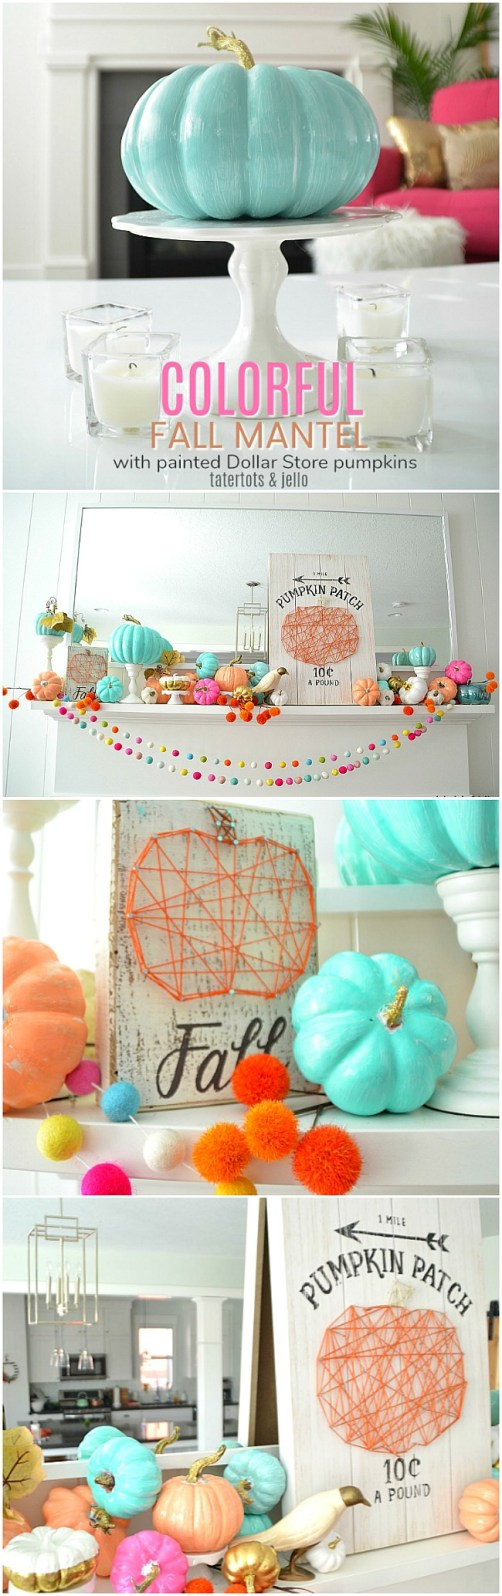 Paint inexpensive dollar tree pumpkins a bright color for a happy fall mantel!